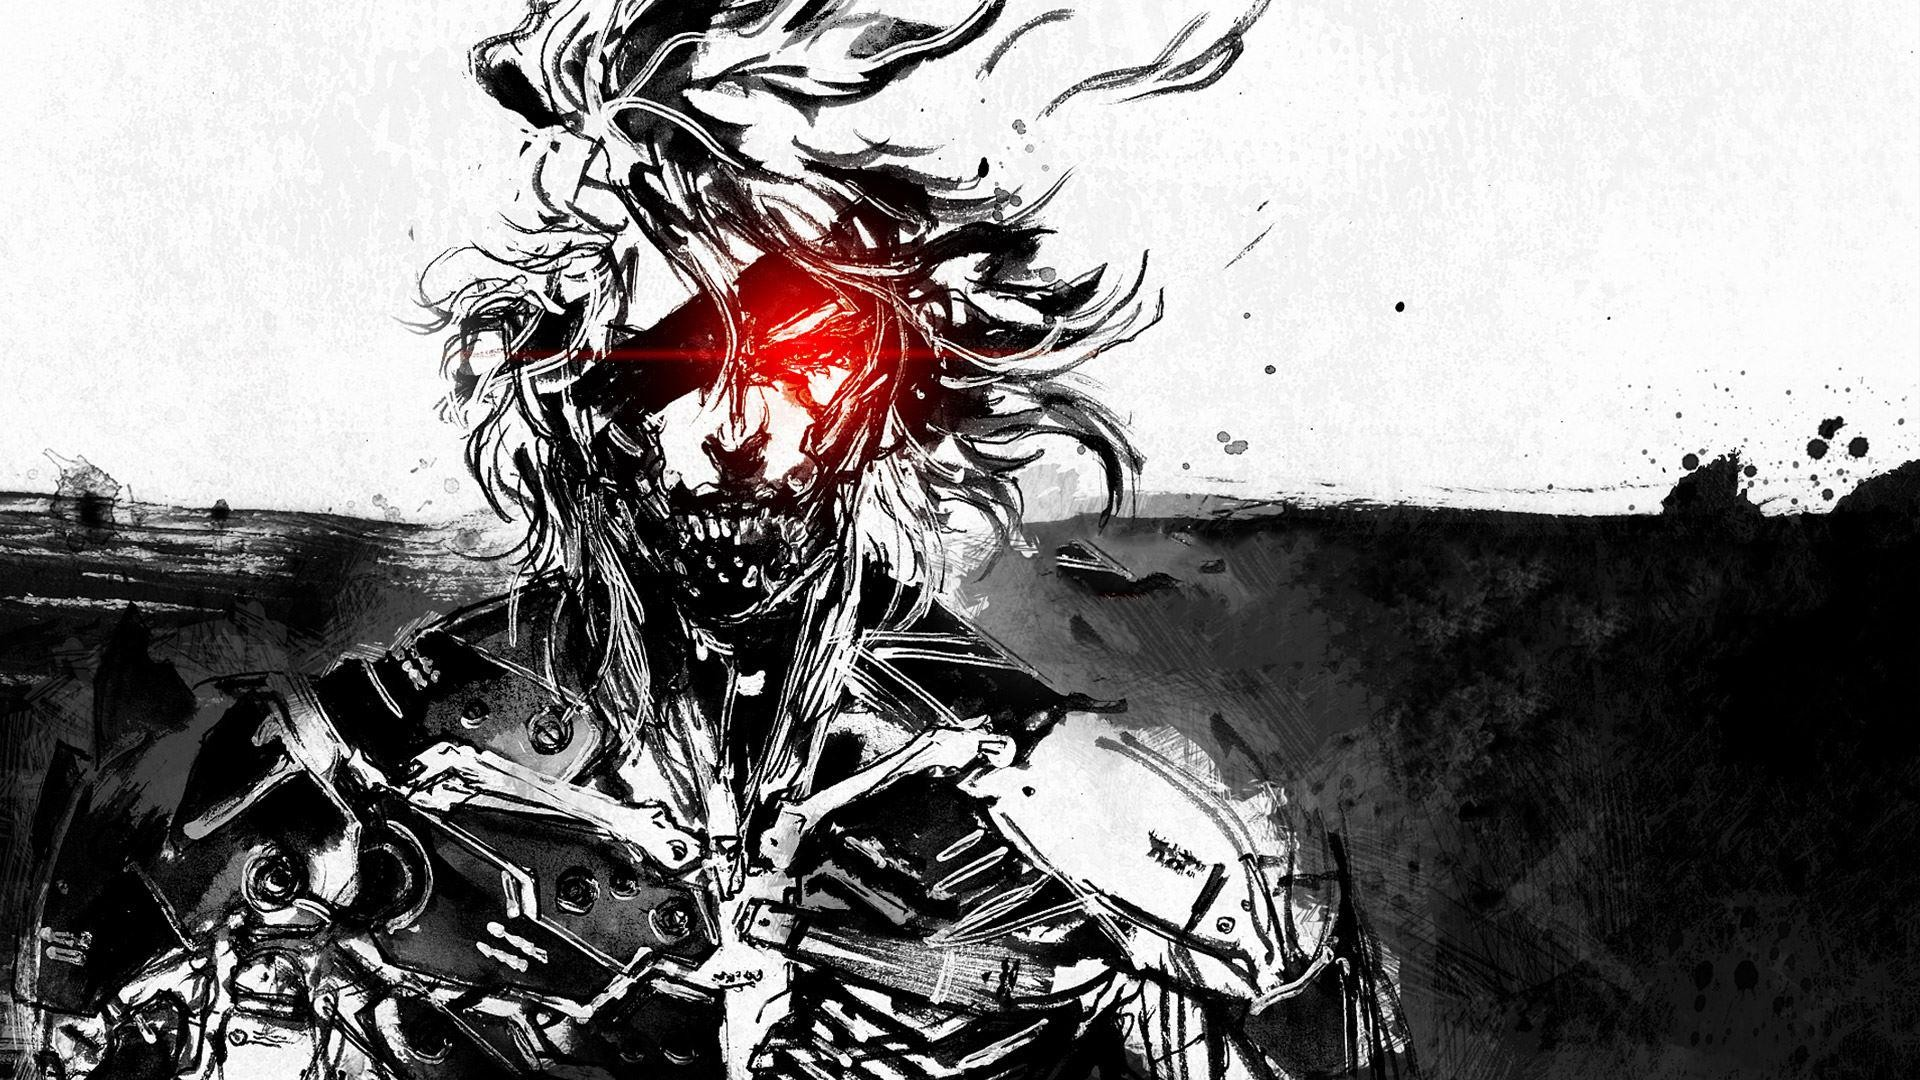 1920x1080 Metal Gear Solid 4 HD Wallpapers and Backgrounds - HD Wallpapers